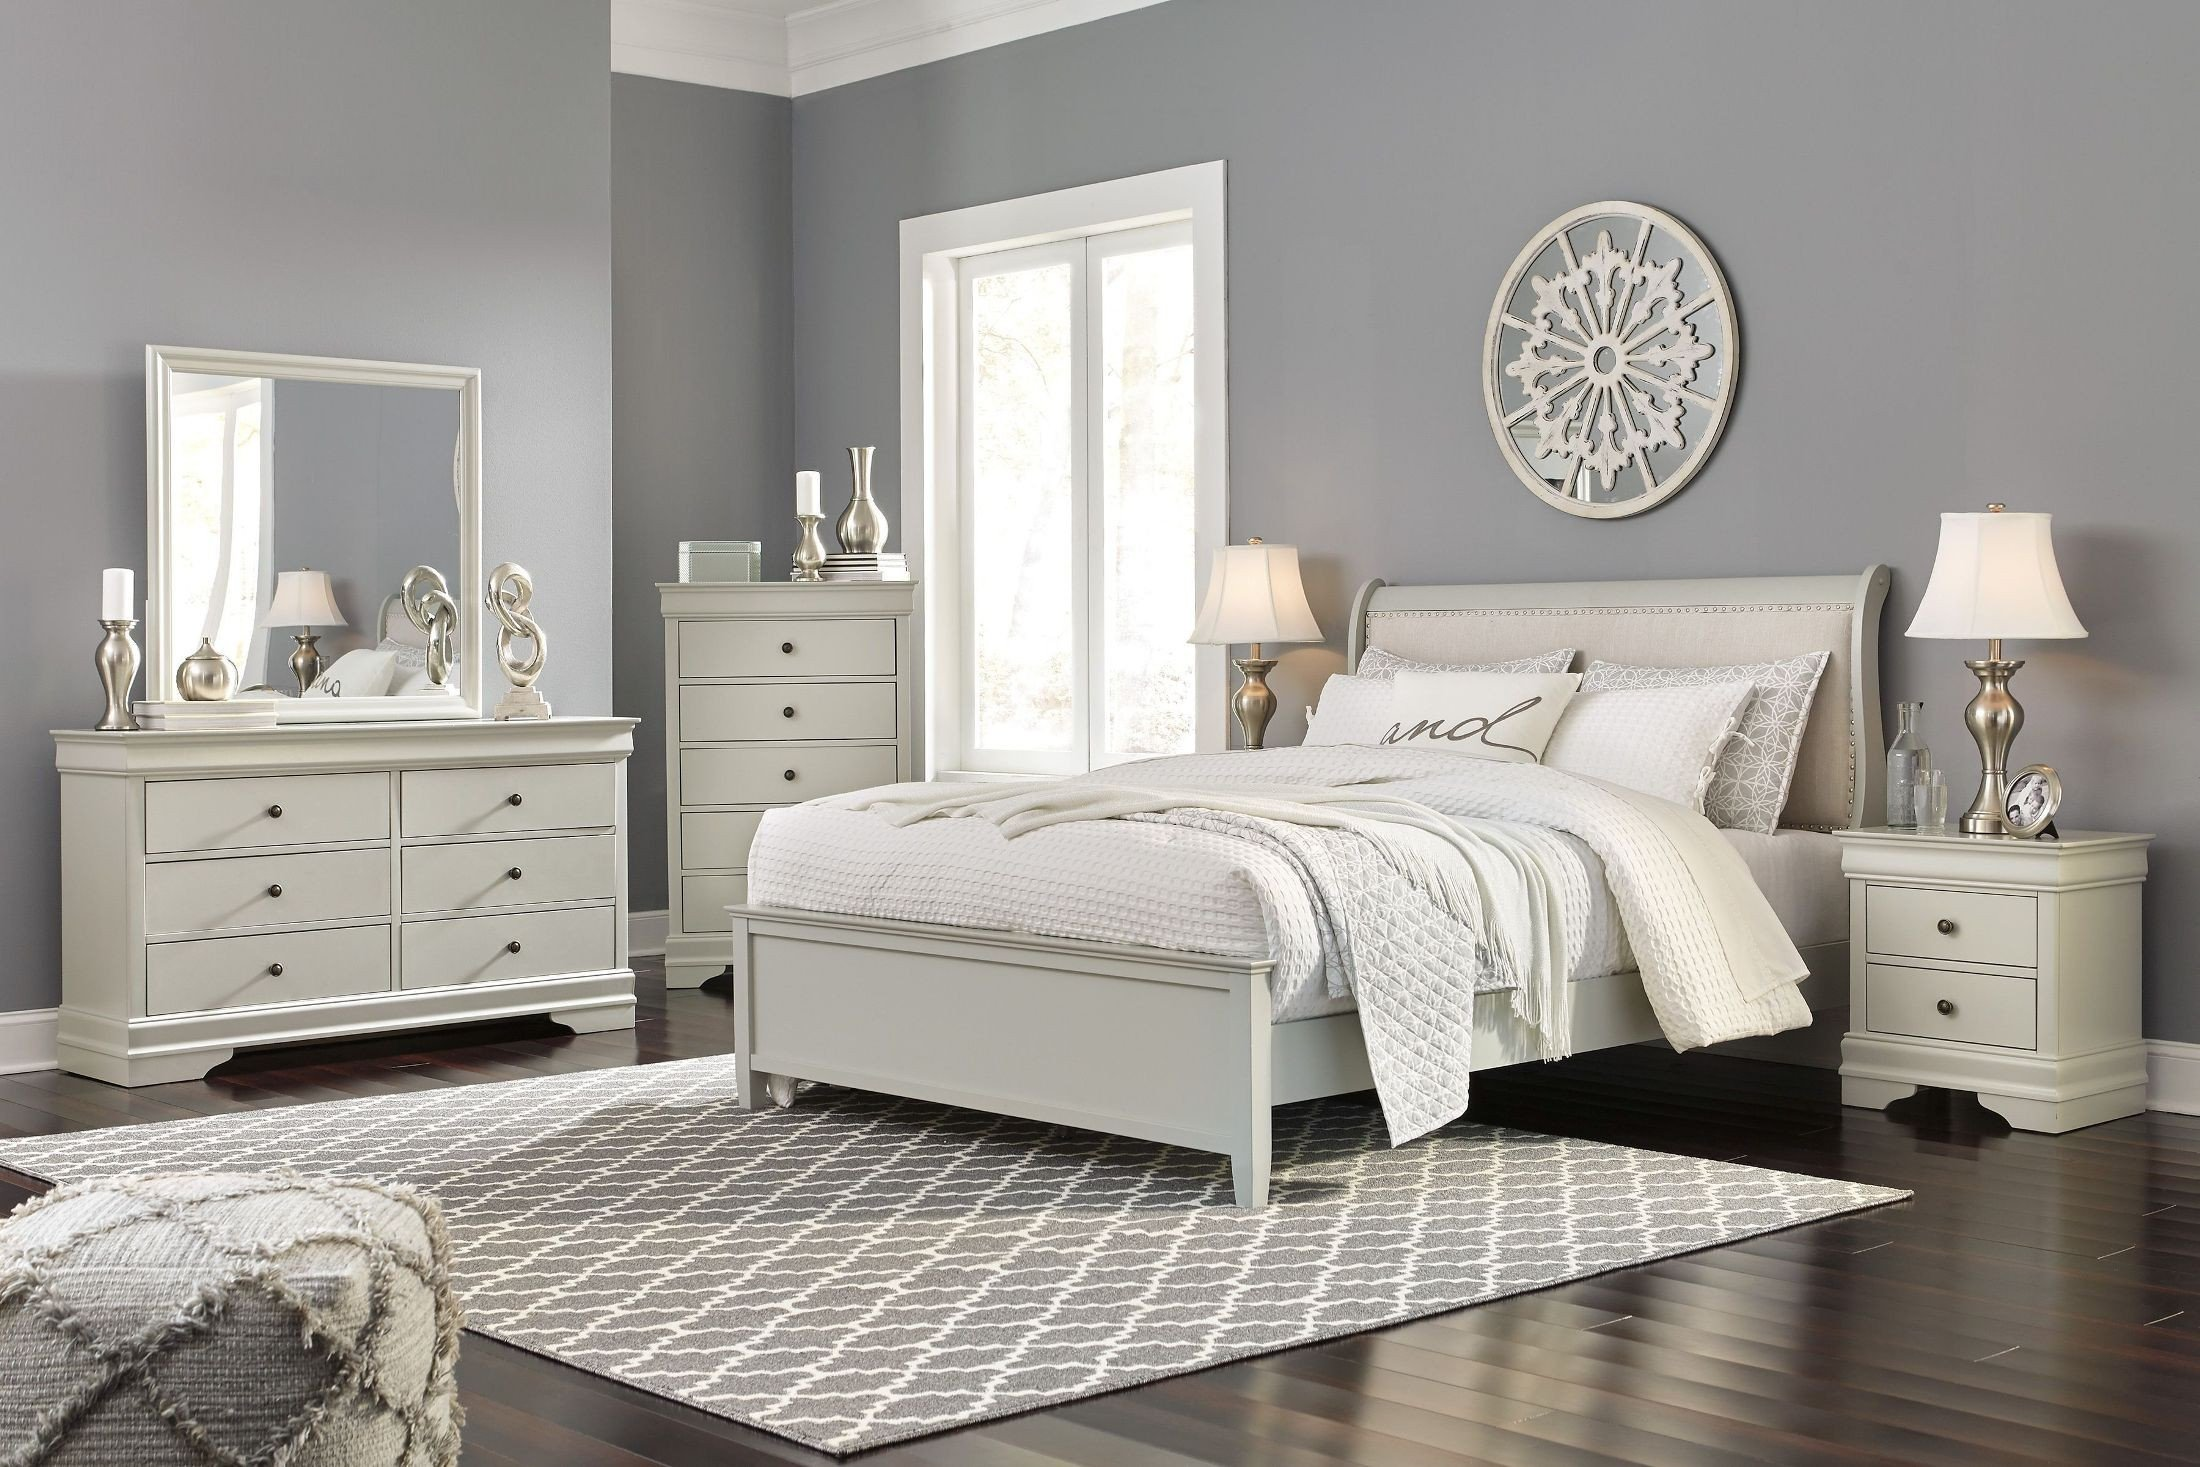 Twin Bed Bedroom Set Awesome Emma Mason Signature Jarred 5 Piece Sleigh Bedroom Set In Gray